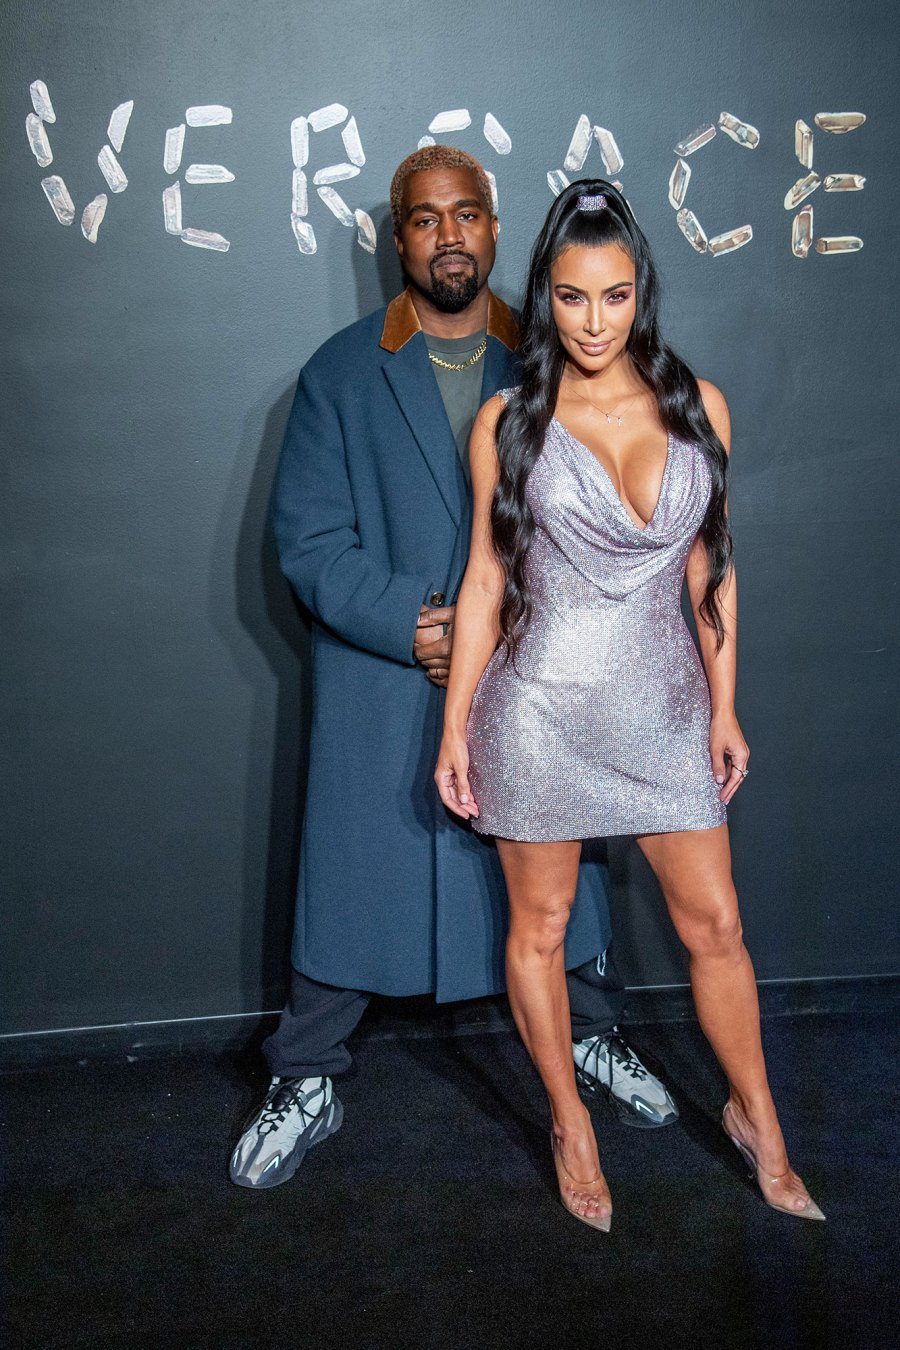 Top 10 Biggest Kardashian and Jenner Stories of 2018: Stormi's Secret Birth, Tristan Thompson's Cheating Scandal and More